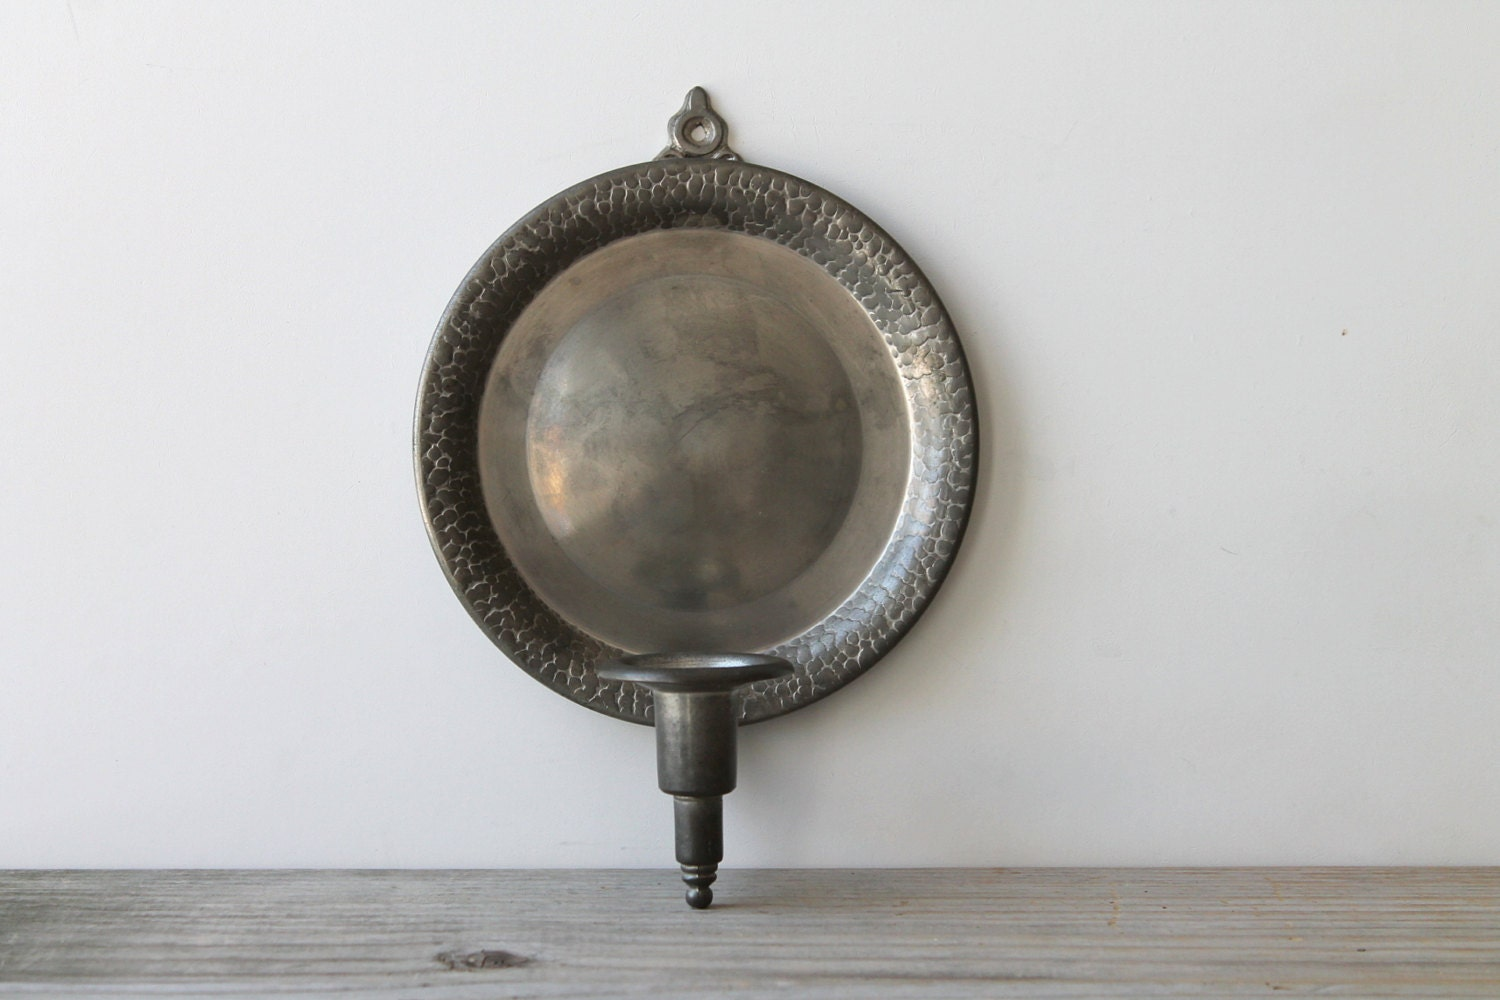 Vintage pewter candle holder / wall sconce / rustic home decor